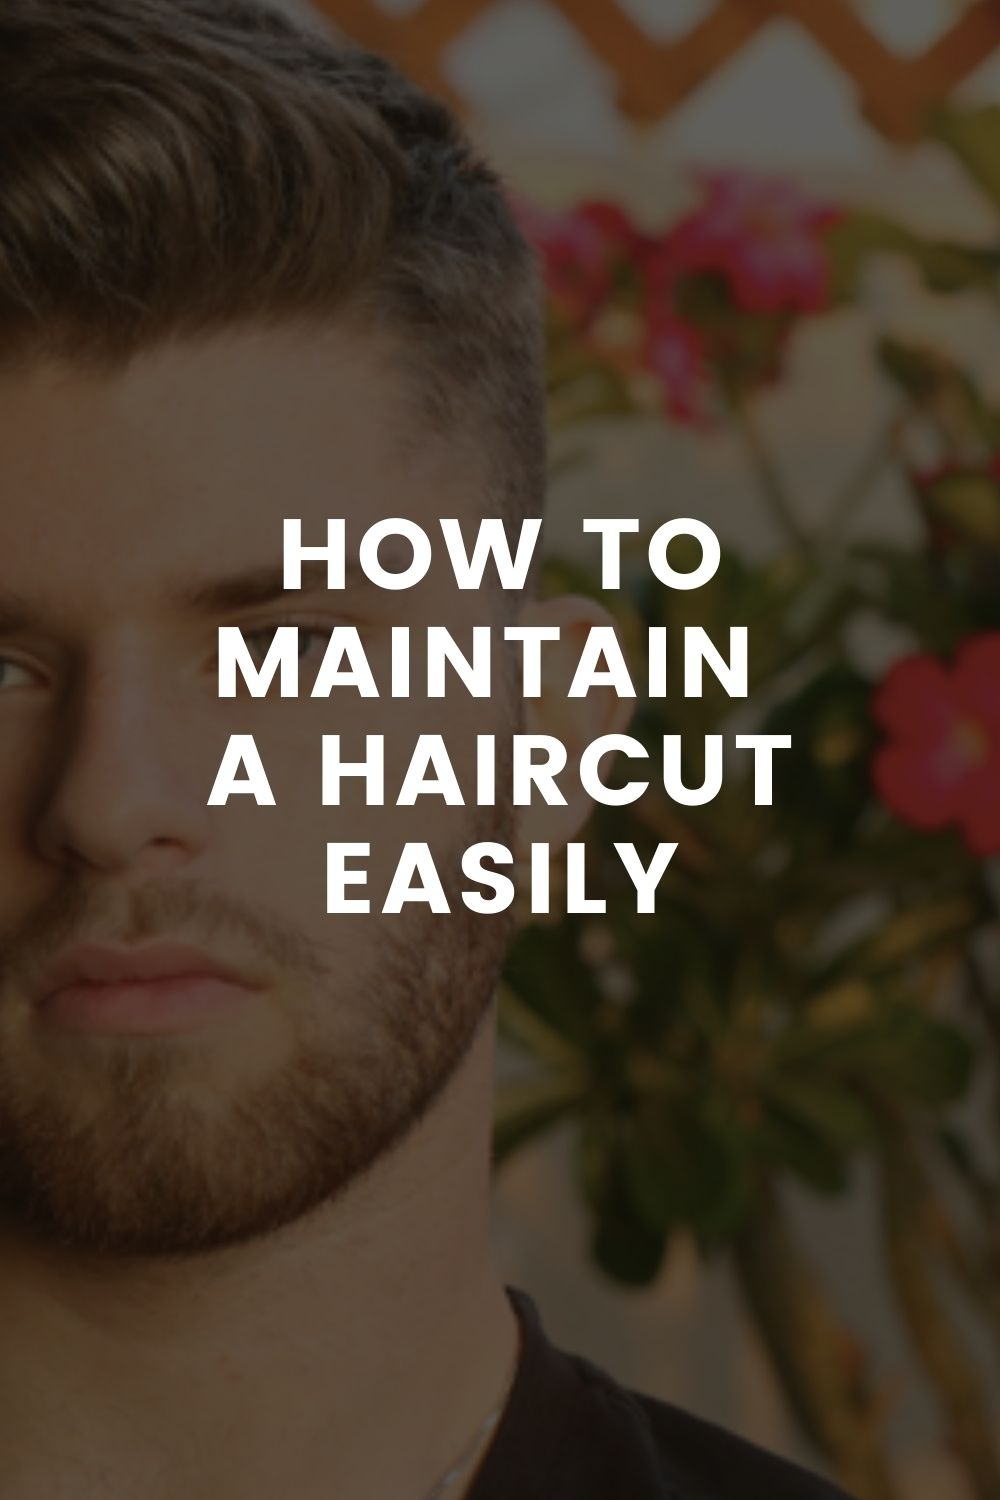 HOW TO MAINTAIN  A HAIRCUT EASILY